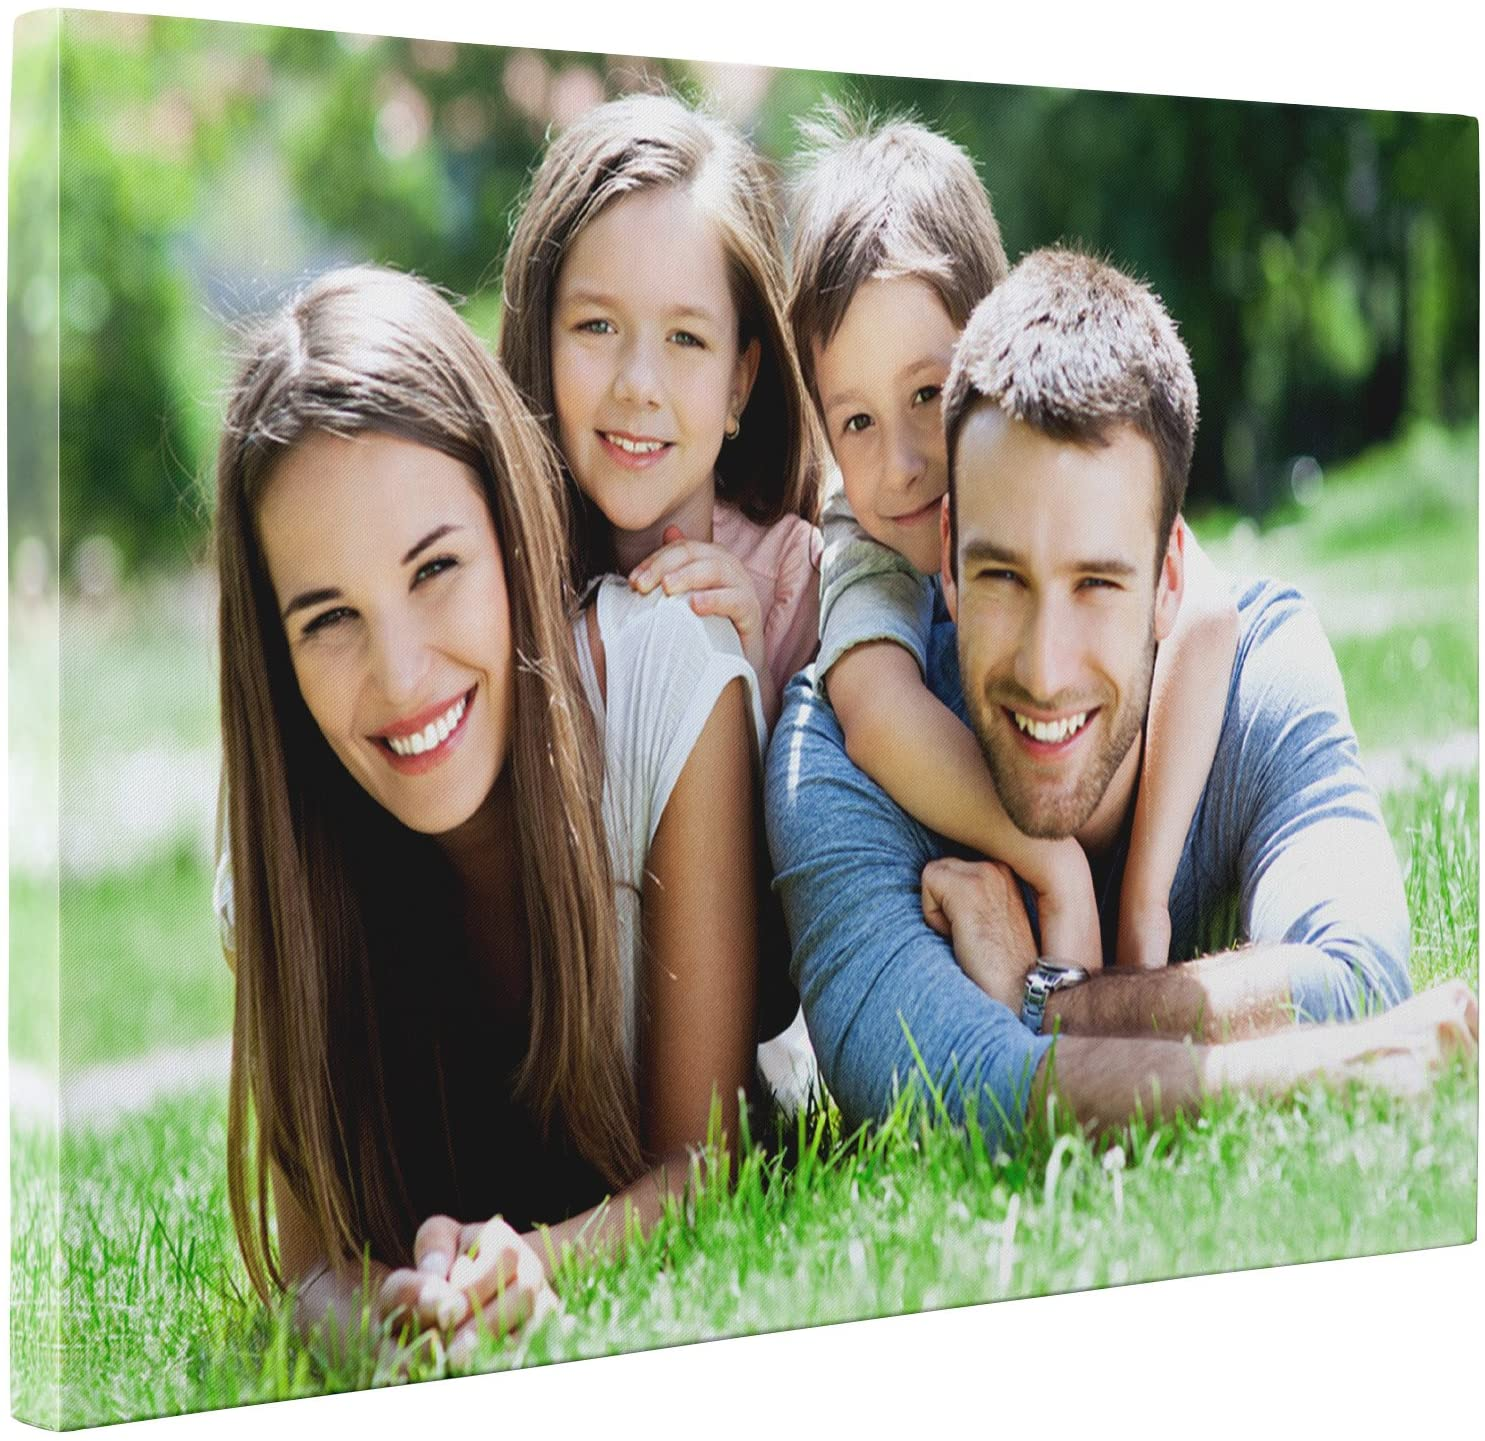 """Niwo ART - On Demand Photo to Canvas - Turn Your Image into Personalized Premium Canvas Art Print - Customized Canvas Picture Stretched on Wooden Frame as Gallery Artwork (16x24, 0.75"""" Thickness)"""